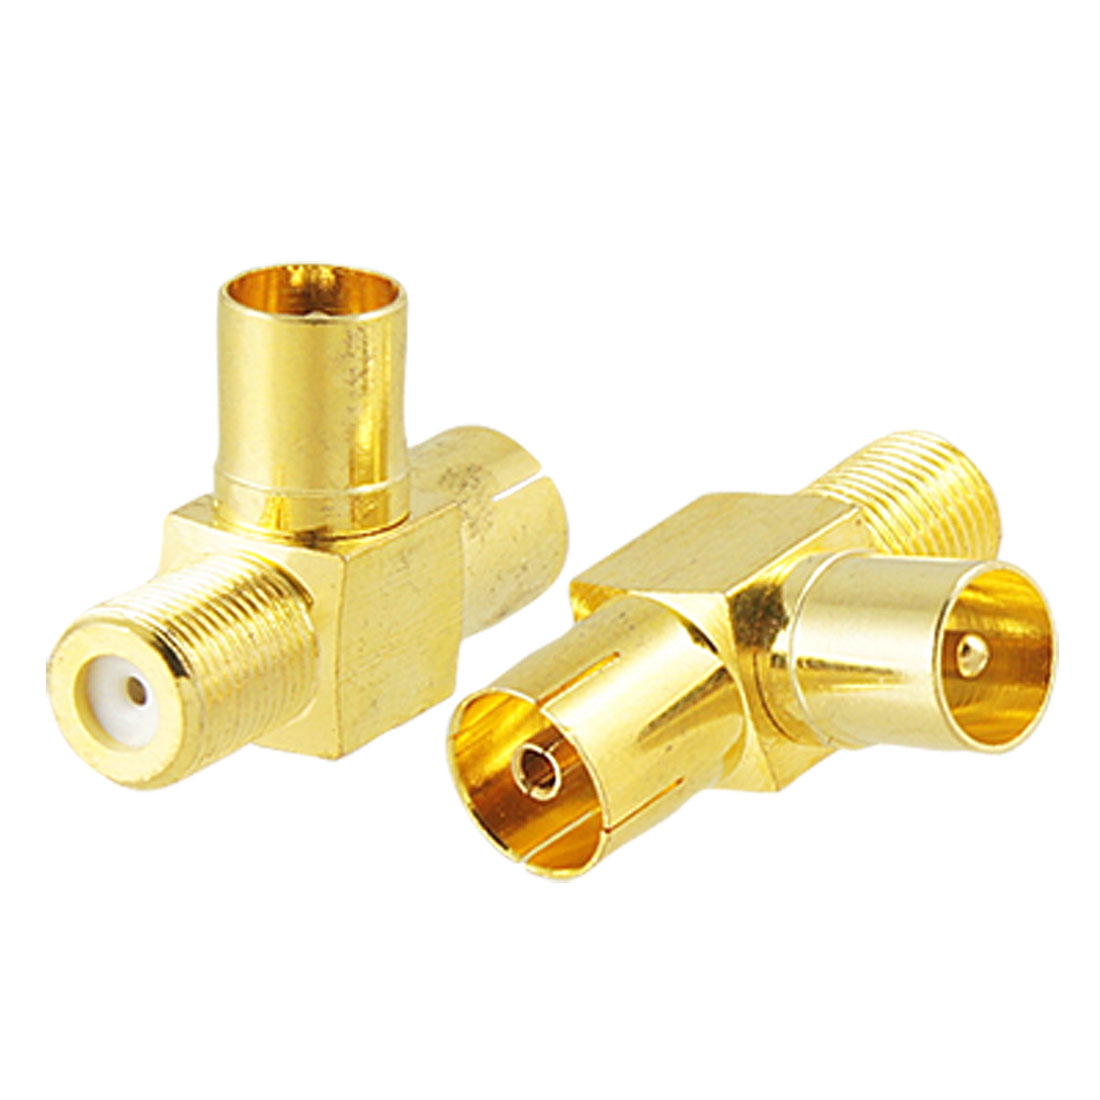 2pcs Gold Plated F Female to TV PAL Female Male RF Coaxial Connector Adapter